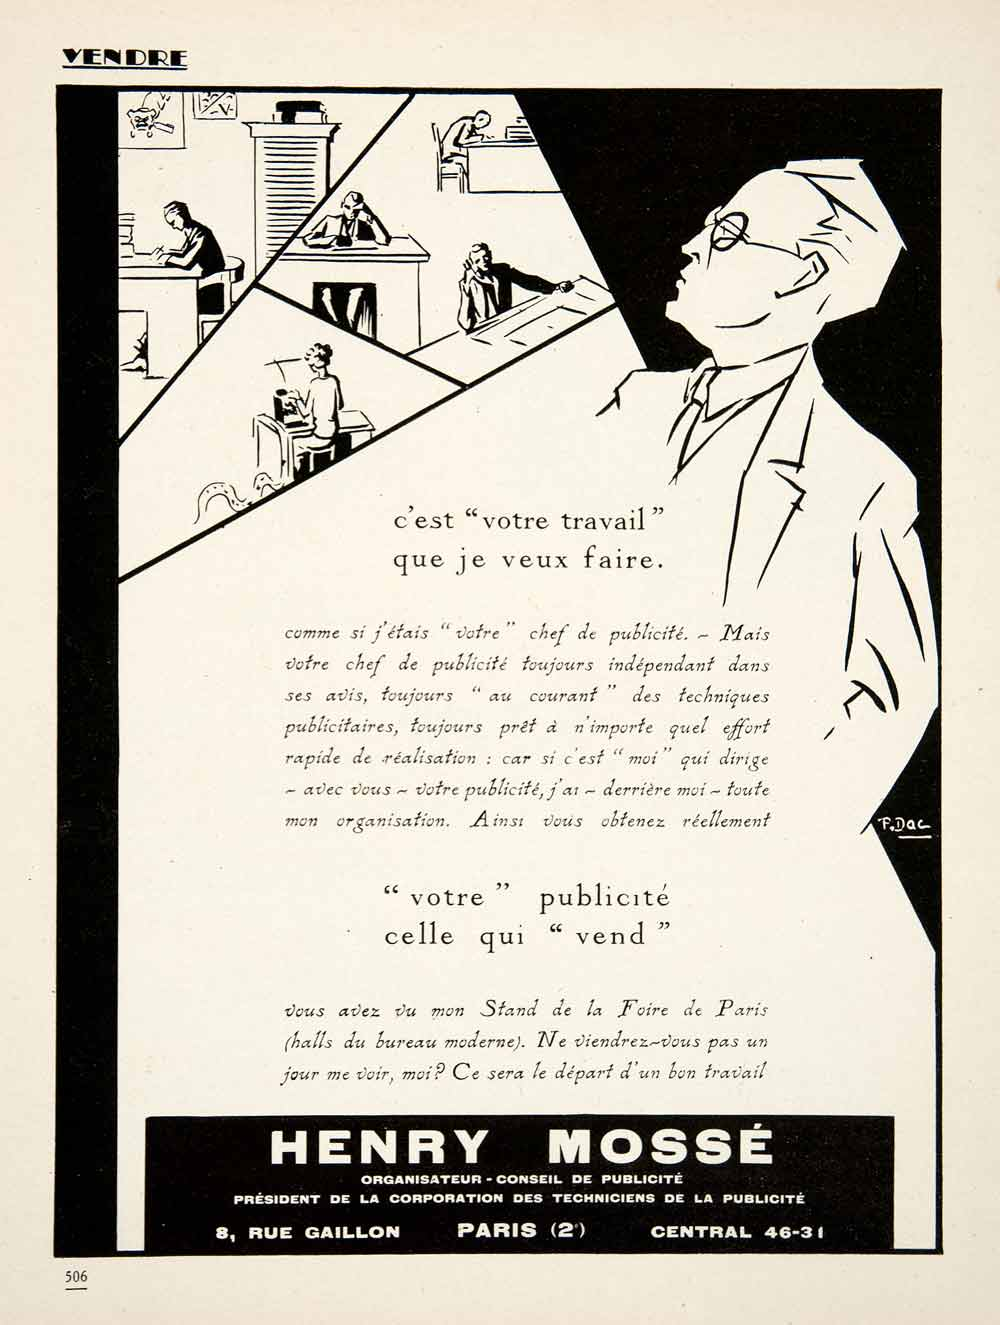 1926 ad henry mosse 8 rue gaillon paris advertising agency for Advertising agency paris